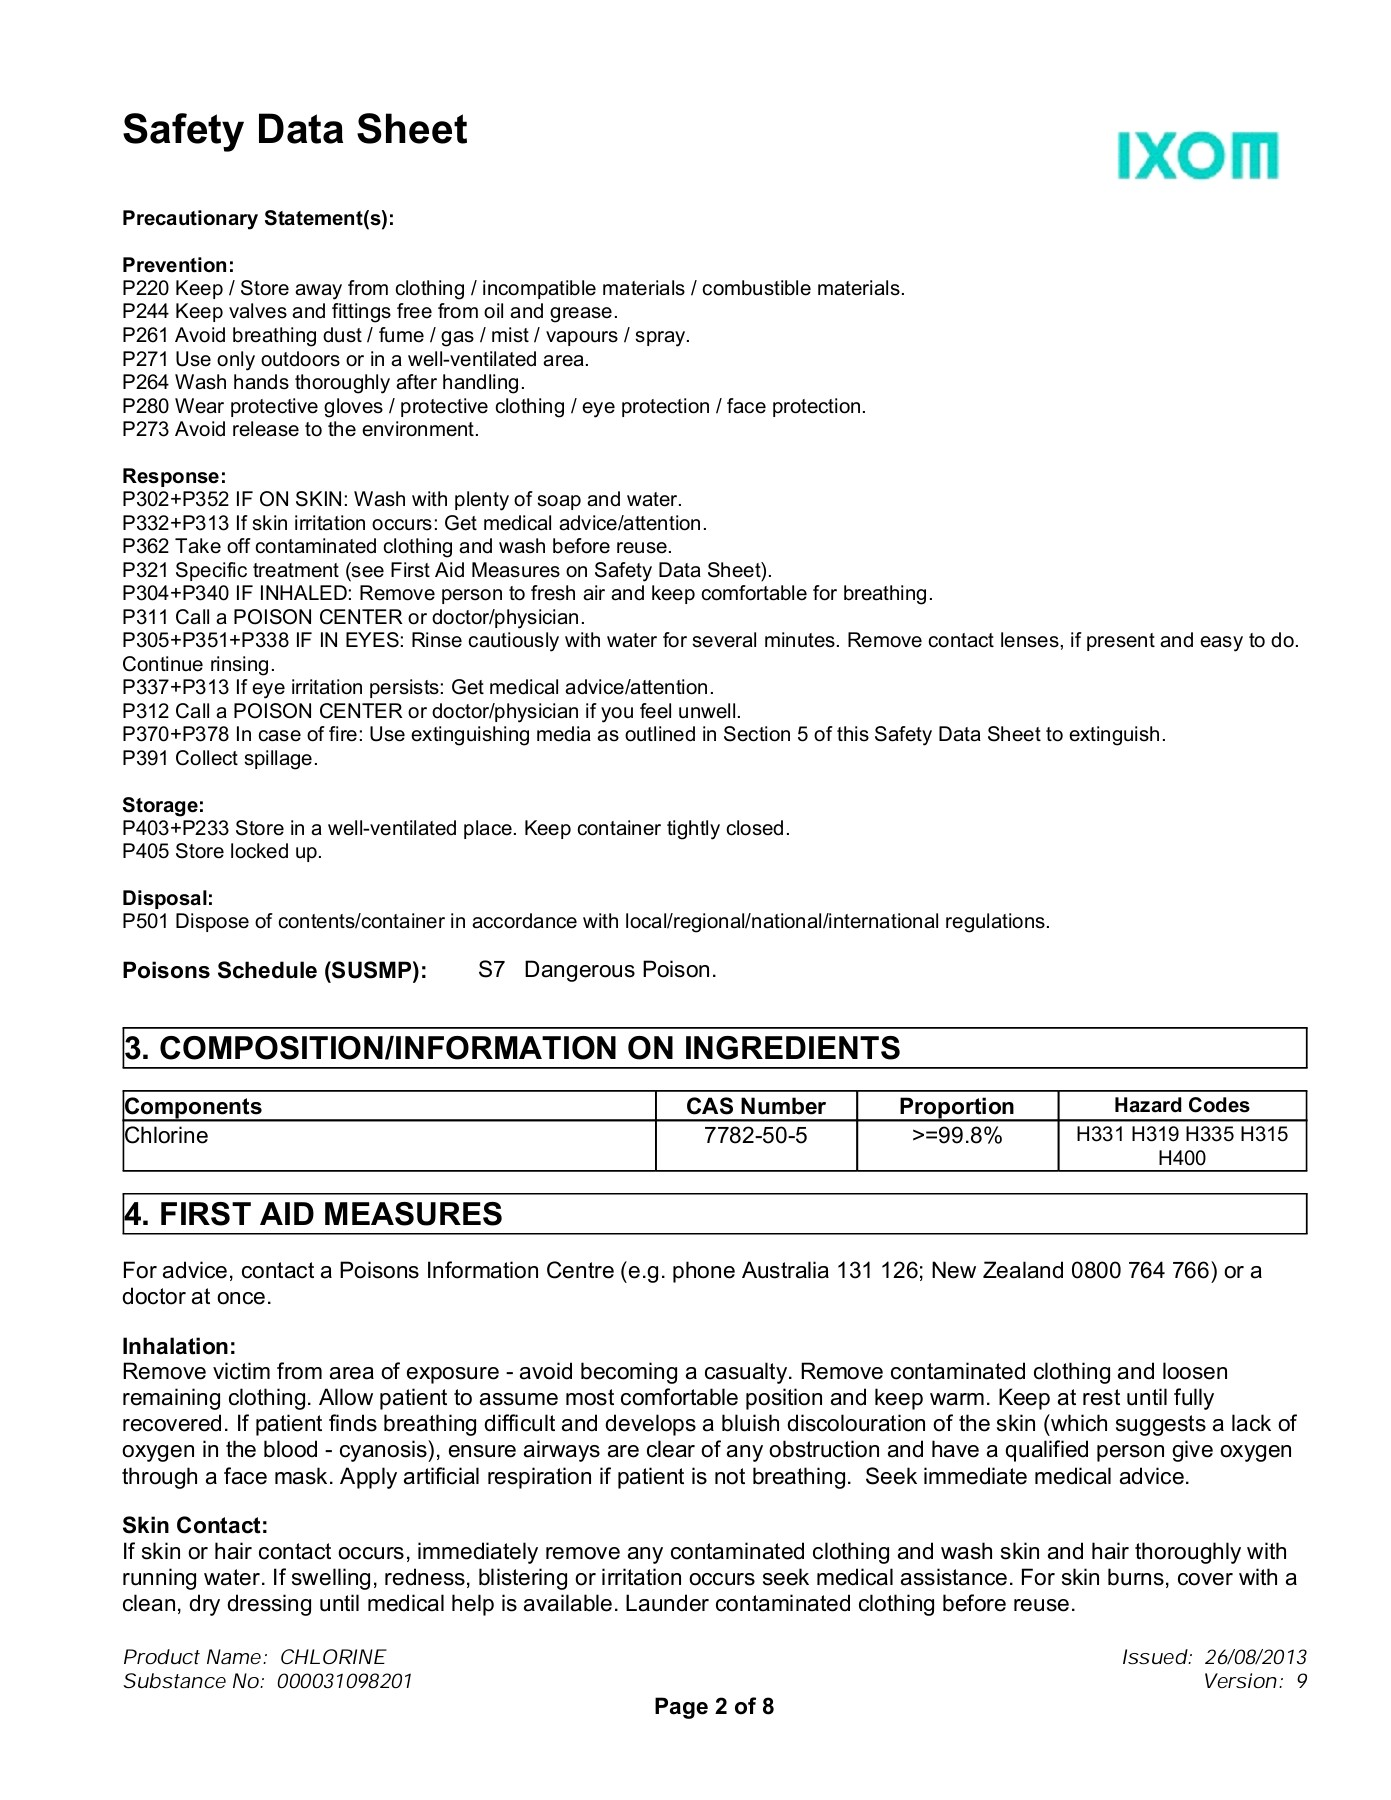 73 Safety Data Sheet Orica Sds Search Pages 1 8 Text Version Anyflip